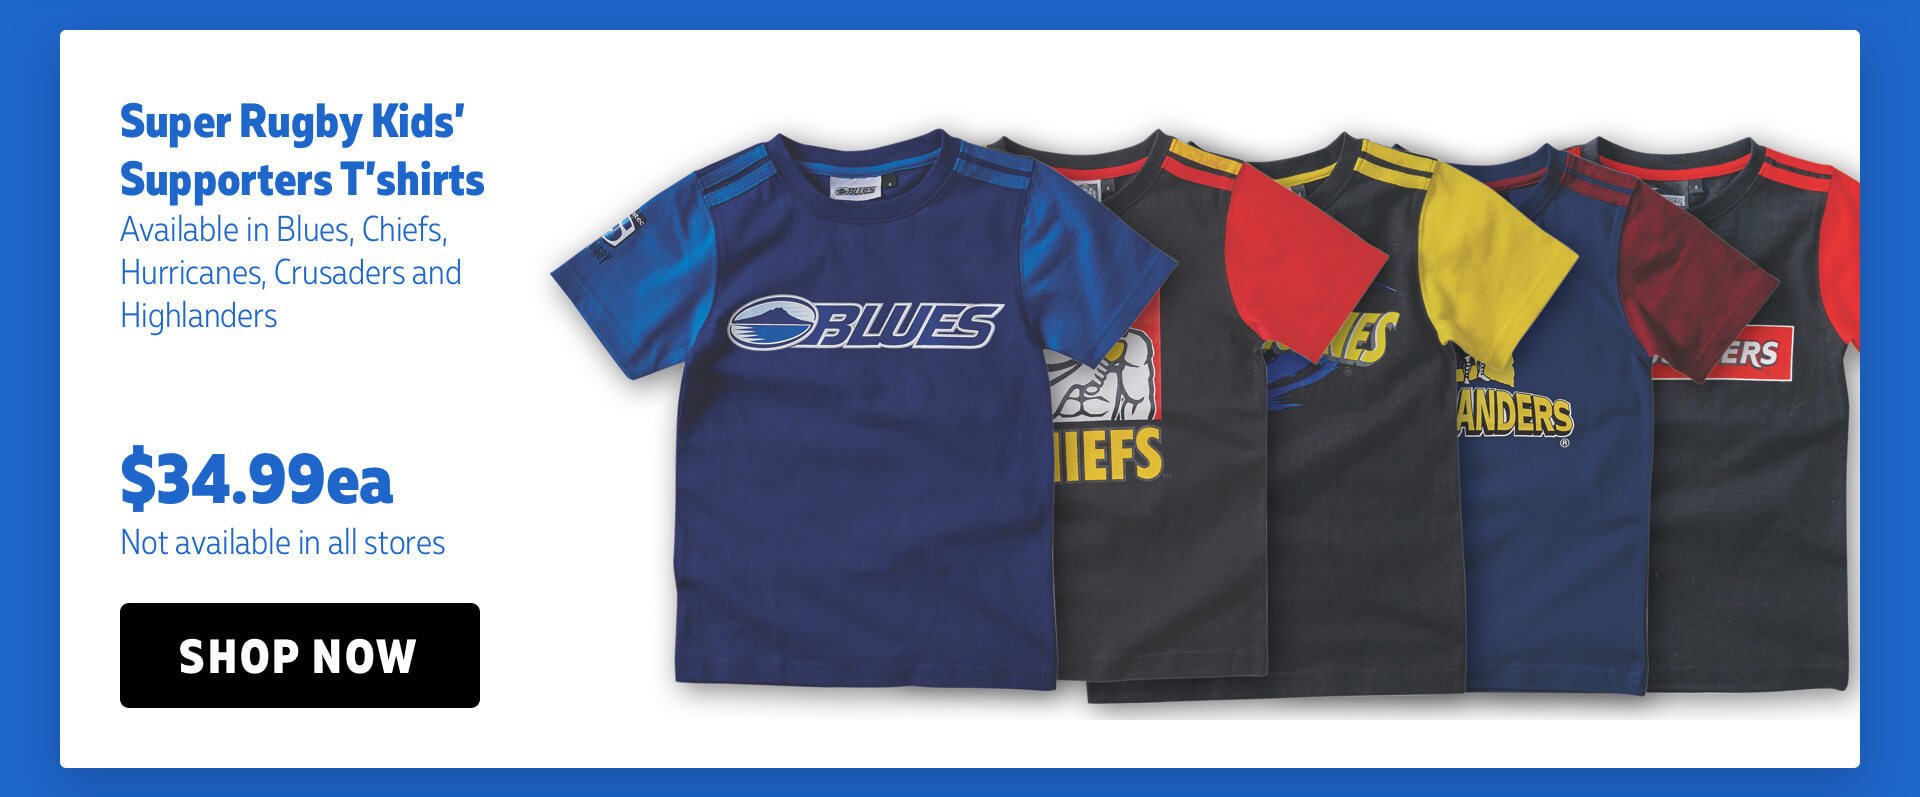 super-rugby-kids-supporters-tshirts